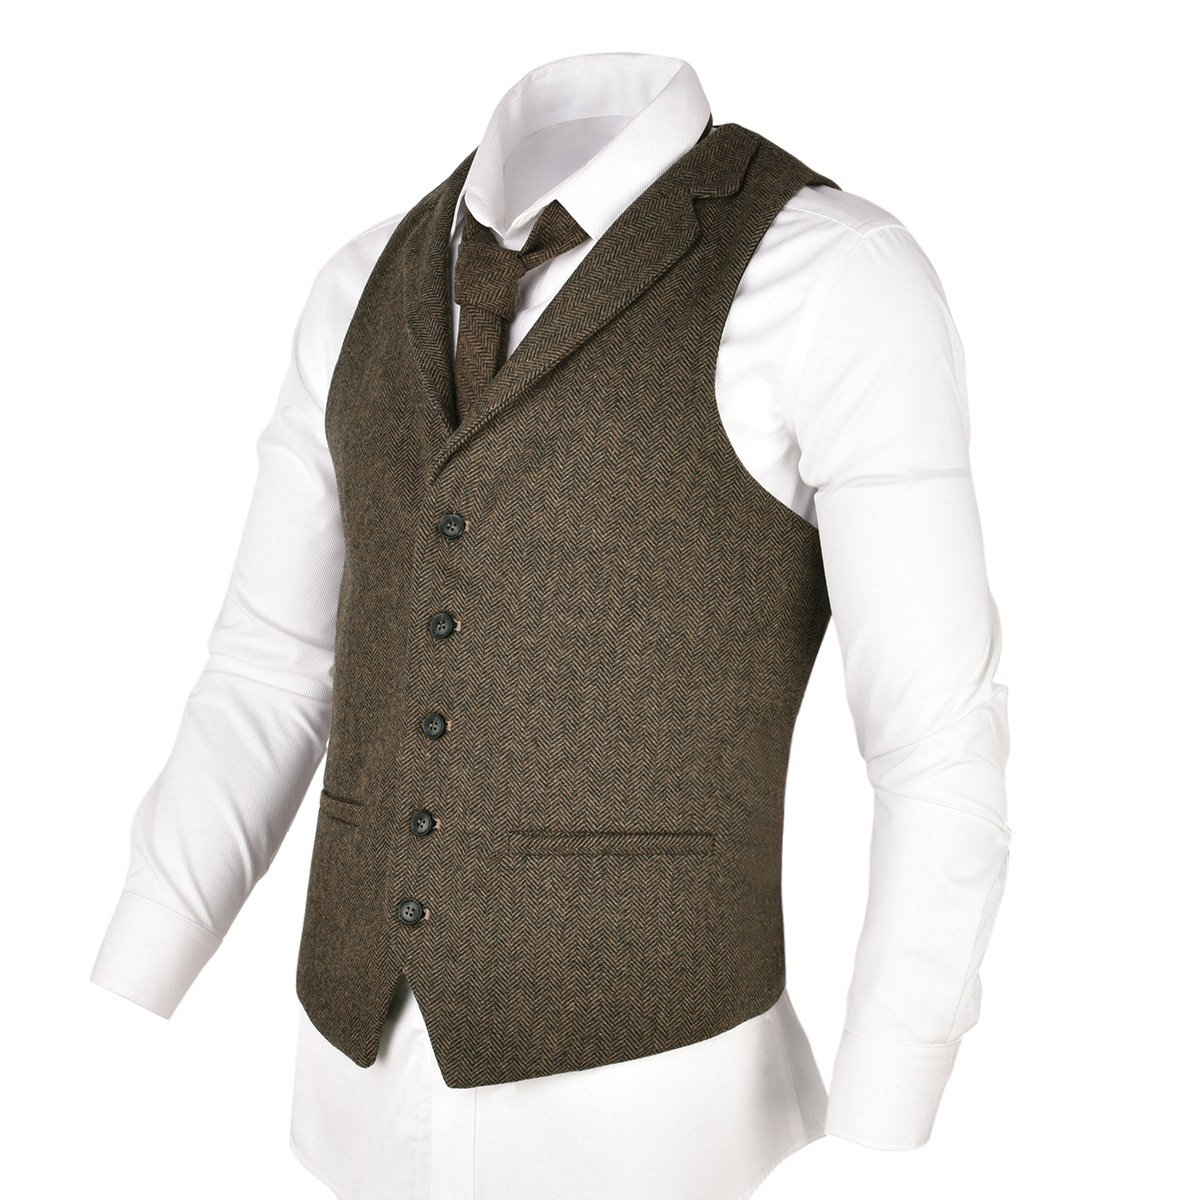 VOBOOM Mens Herringbone Tailored Collar Waistcoat Fullback Wool Tweed Suit Vest (Khaki, L)